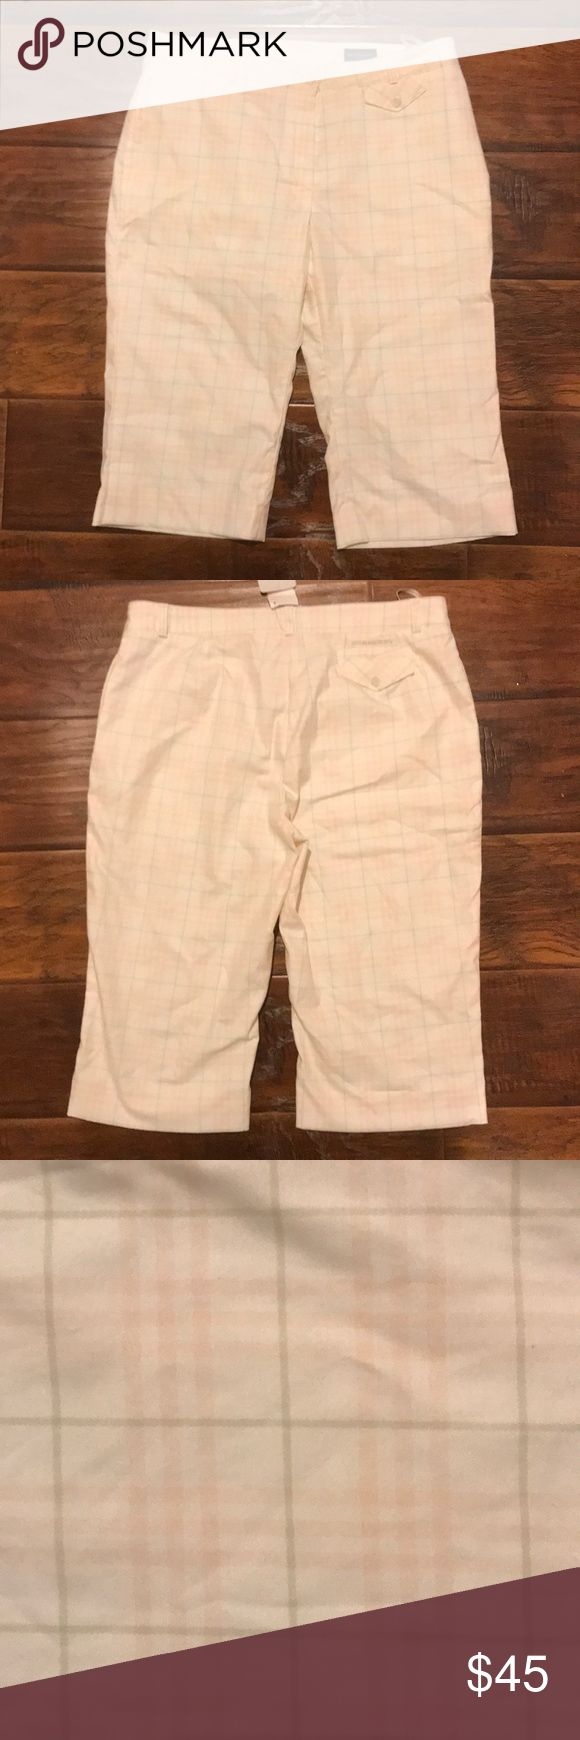 Plaid Burberry Golf Shorts Burberry Golf Shorts. Size UK 12/US 10 but seem more like a 8. I'm 5-9' and falls way past knees in length. . Pink, white and gray plaid. Never worn. Perfect Condition. Burberry Shorts Bermudas